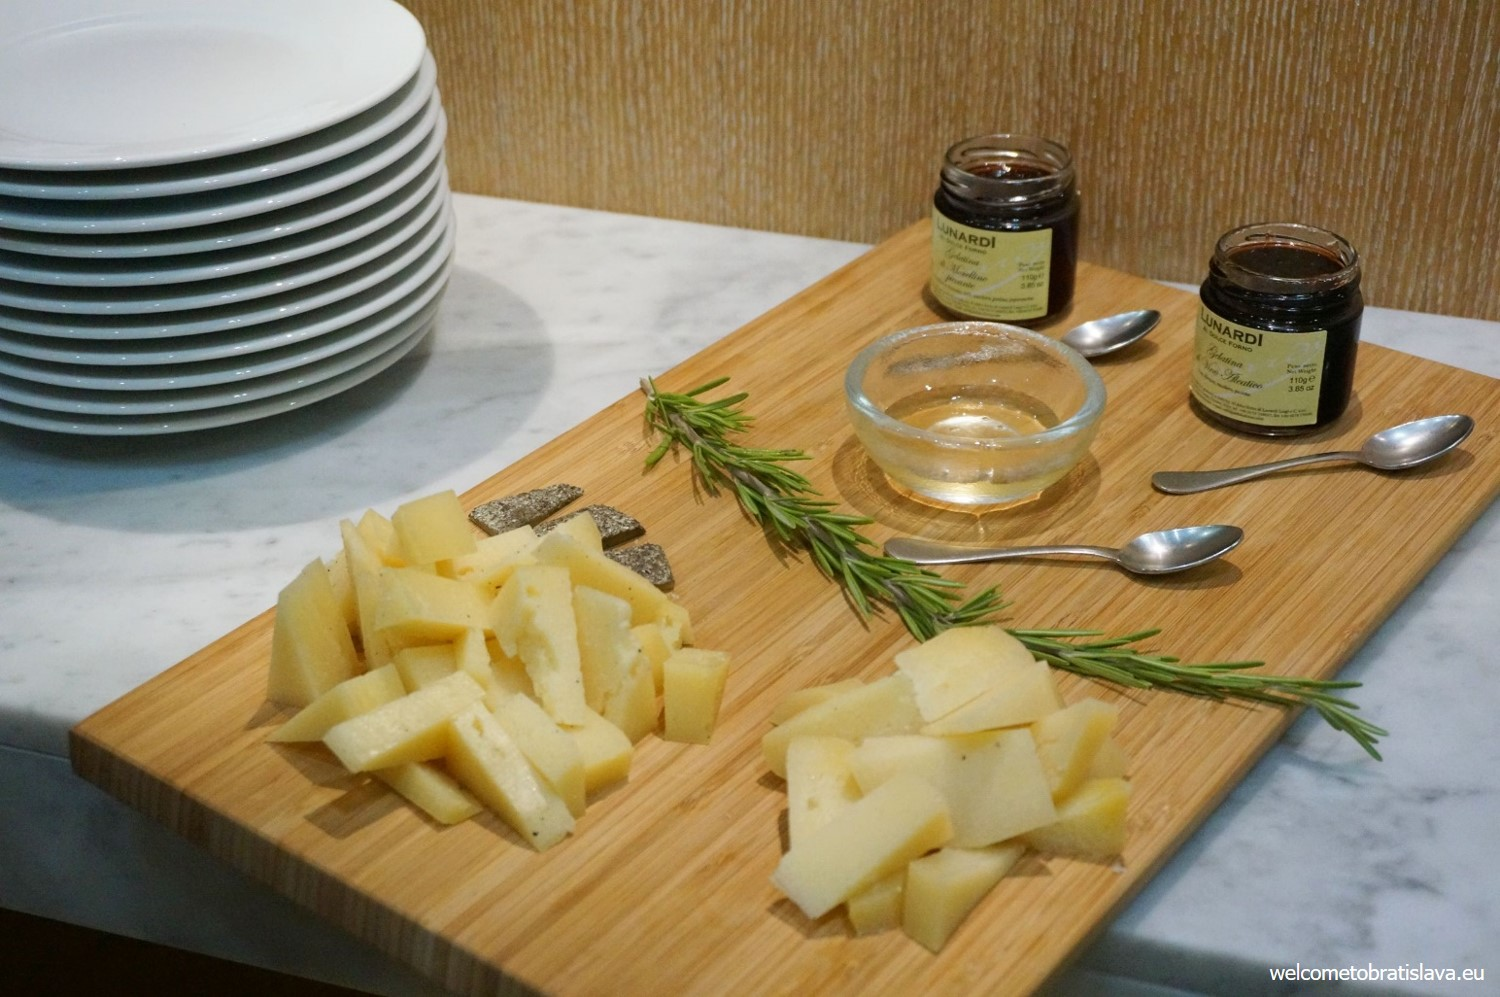 A selection of cheeses with jellies and honey